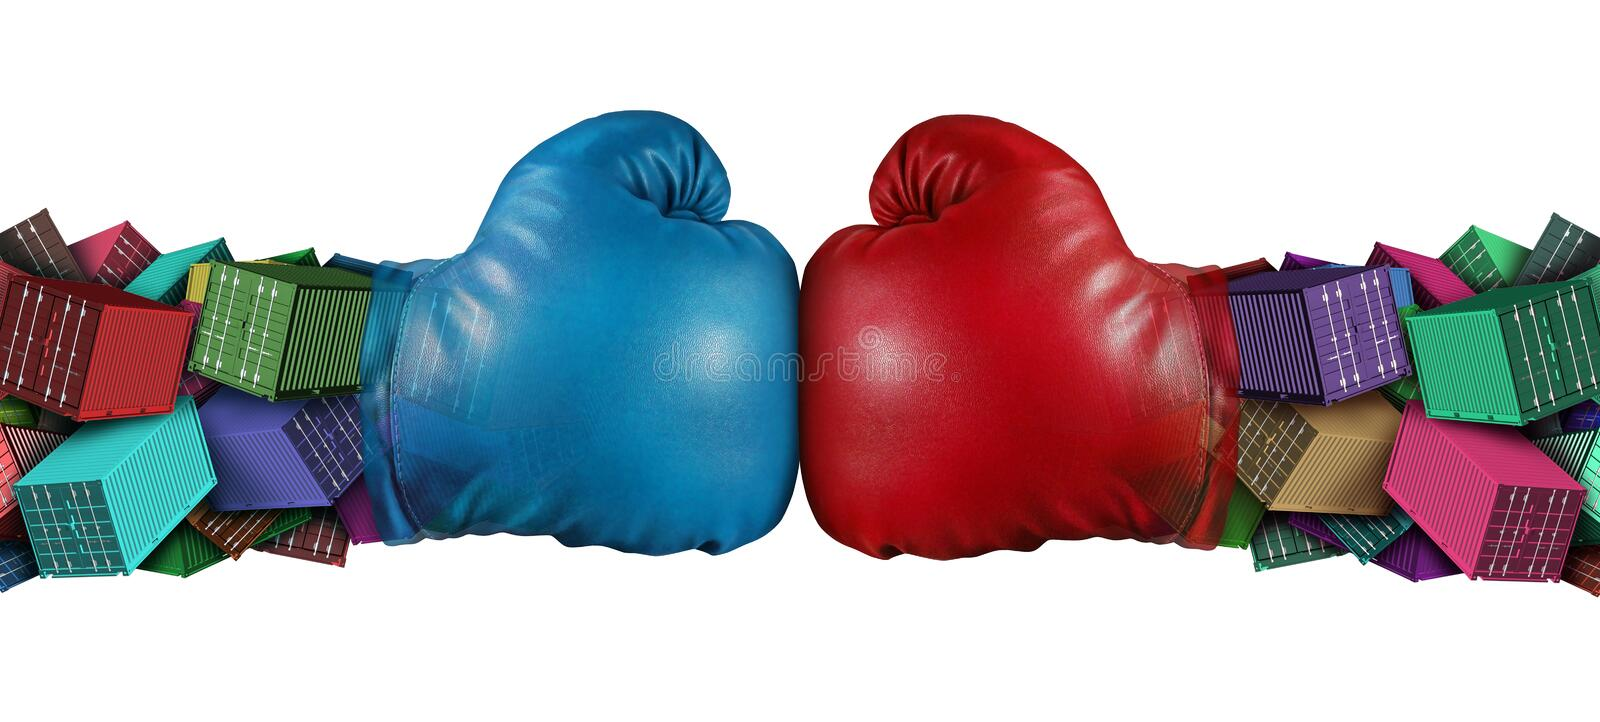 Trade War Idea. Trade war dispute economic fight business concept as national trade tariff disagreement and export or import duties argument fighting with 3D vector illustration